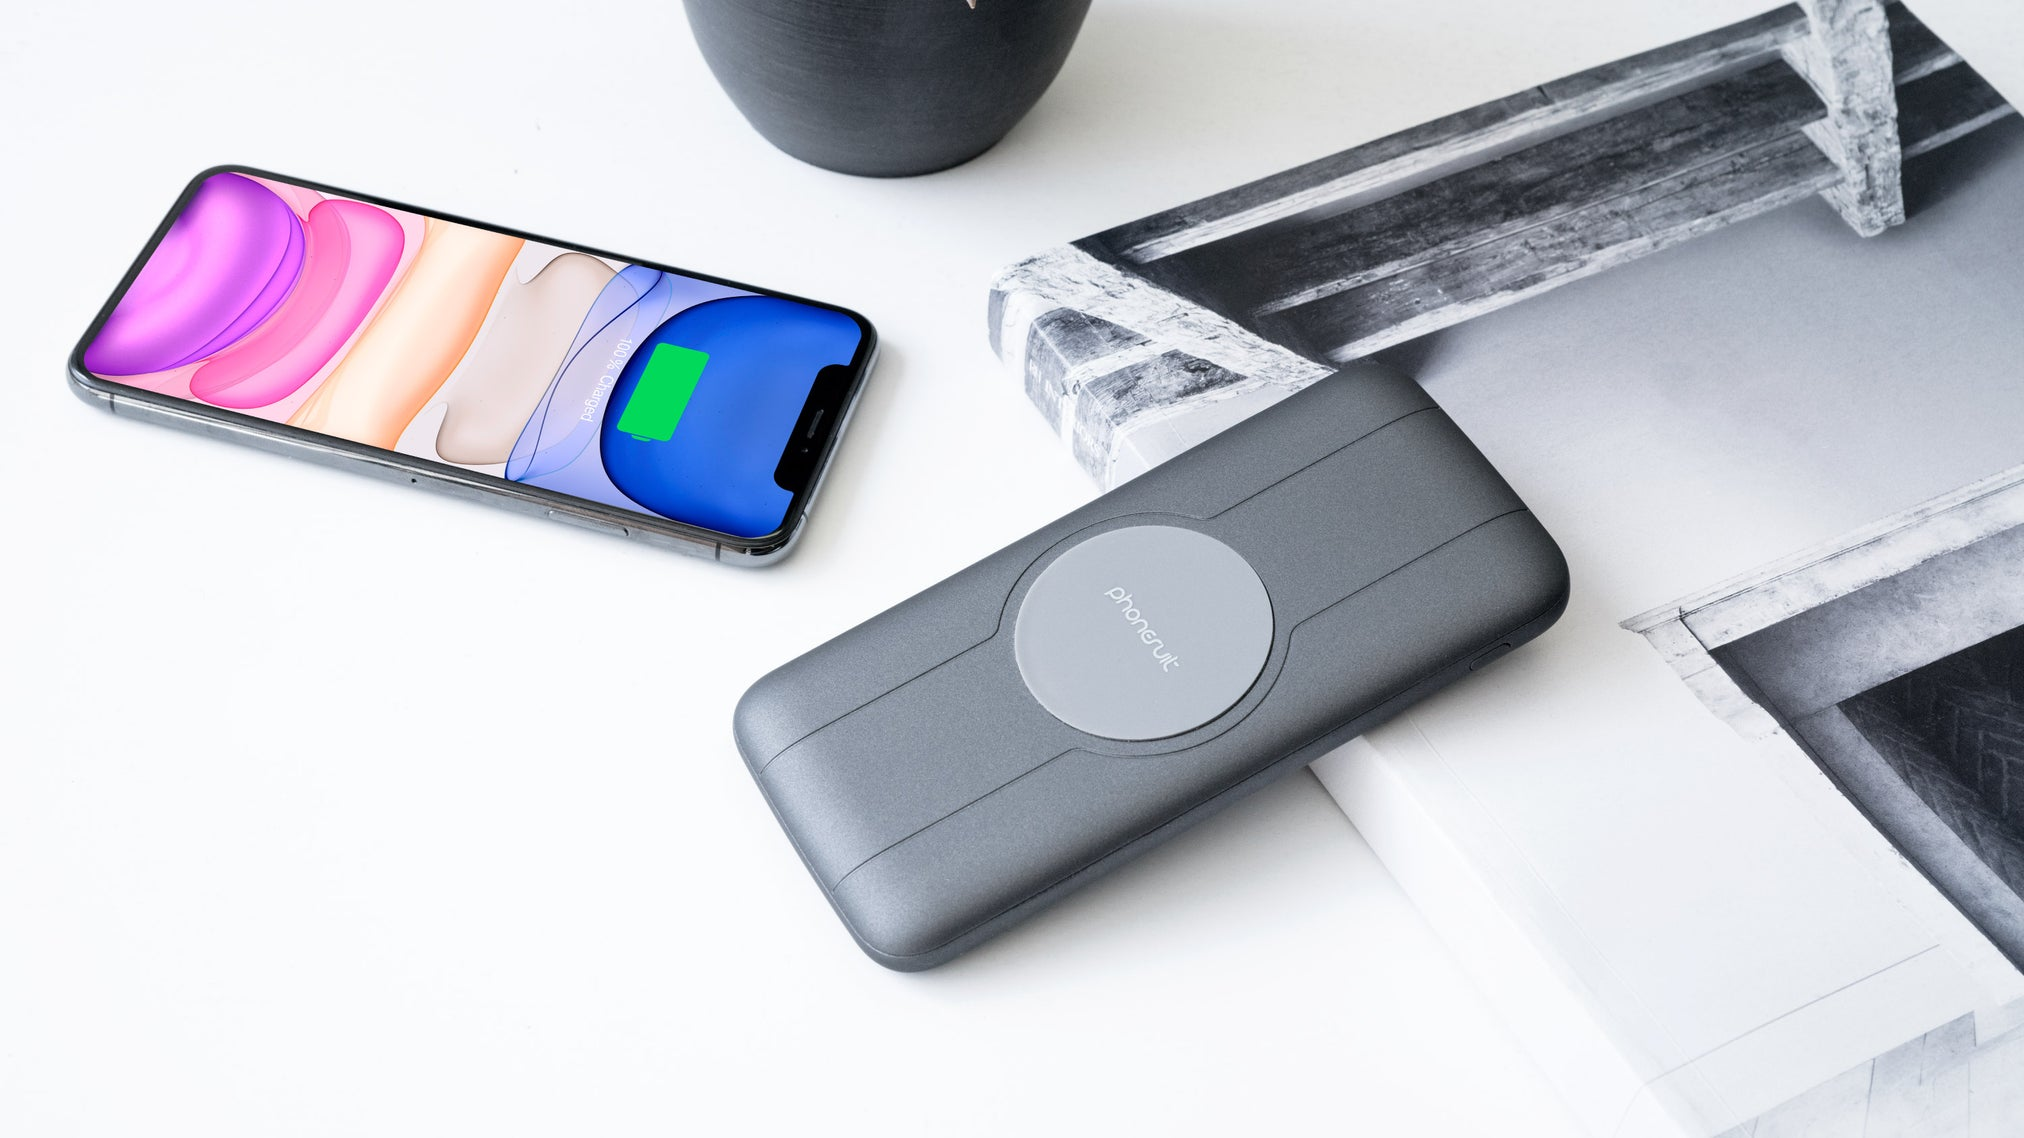 Energy Core All-In-One Wireless Portable Charger & Battery Pack for iPhone, AirPods, Samsung & More